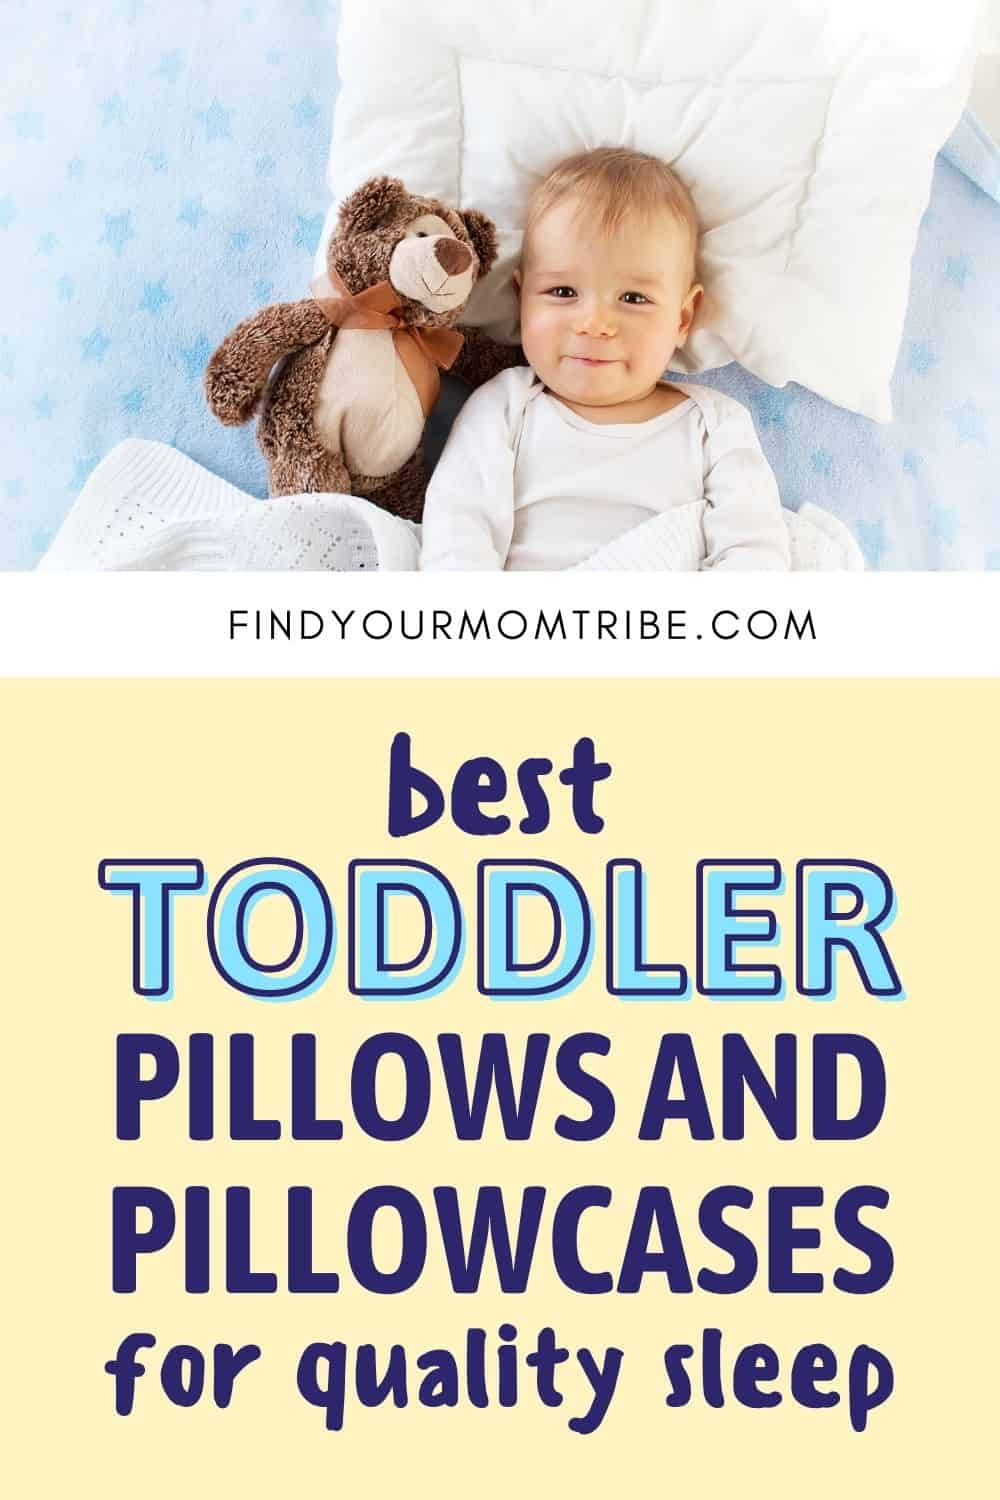 Best Toddler Pillows And Pillowcases For Quality Sleep Pinterest